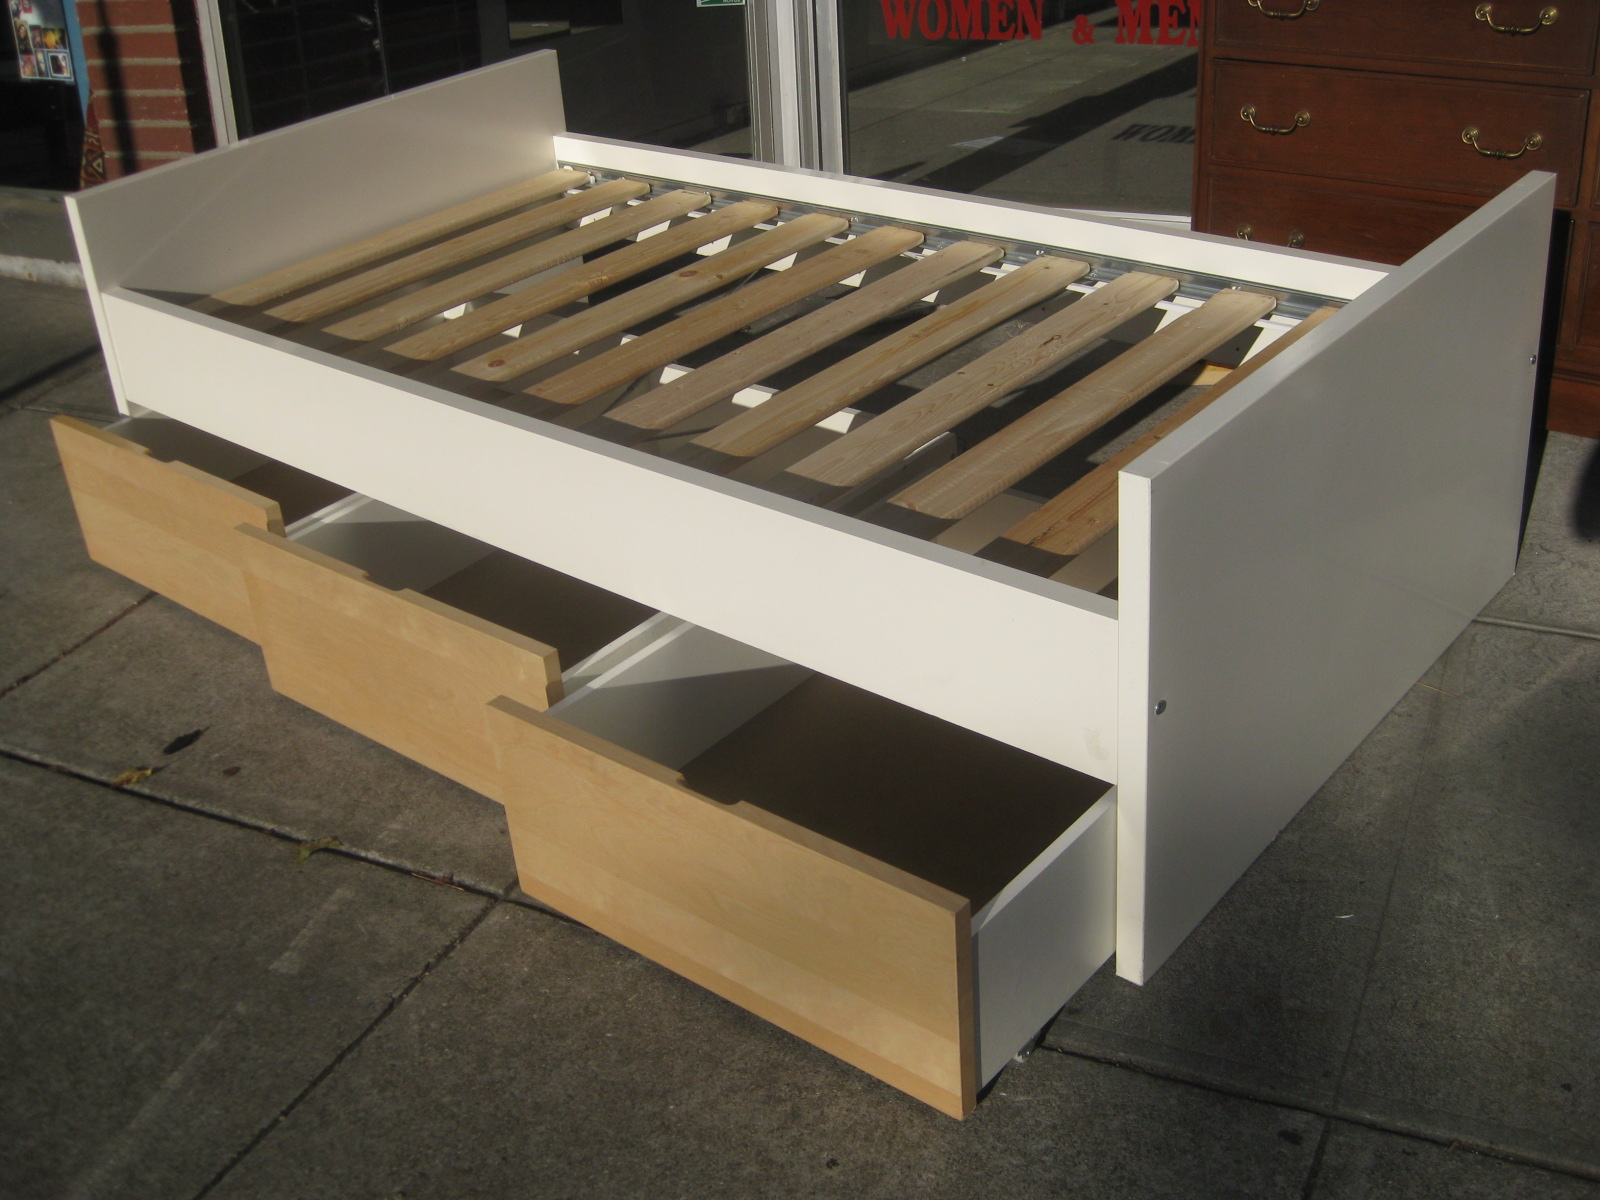 King Size Platform Bed Drawers Plans Aquaponics Build